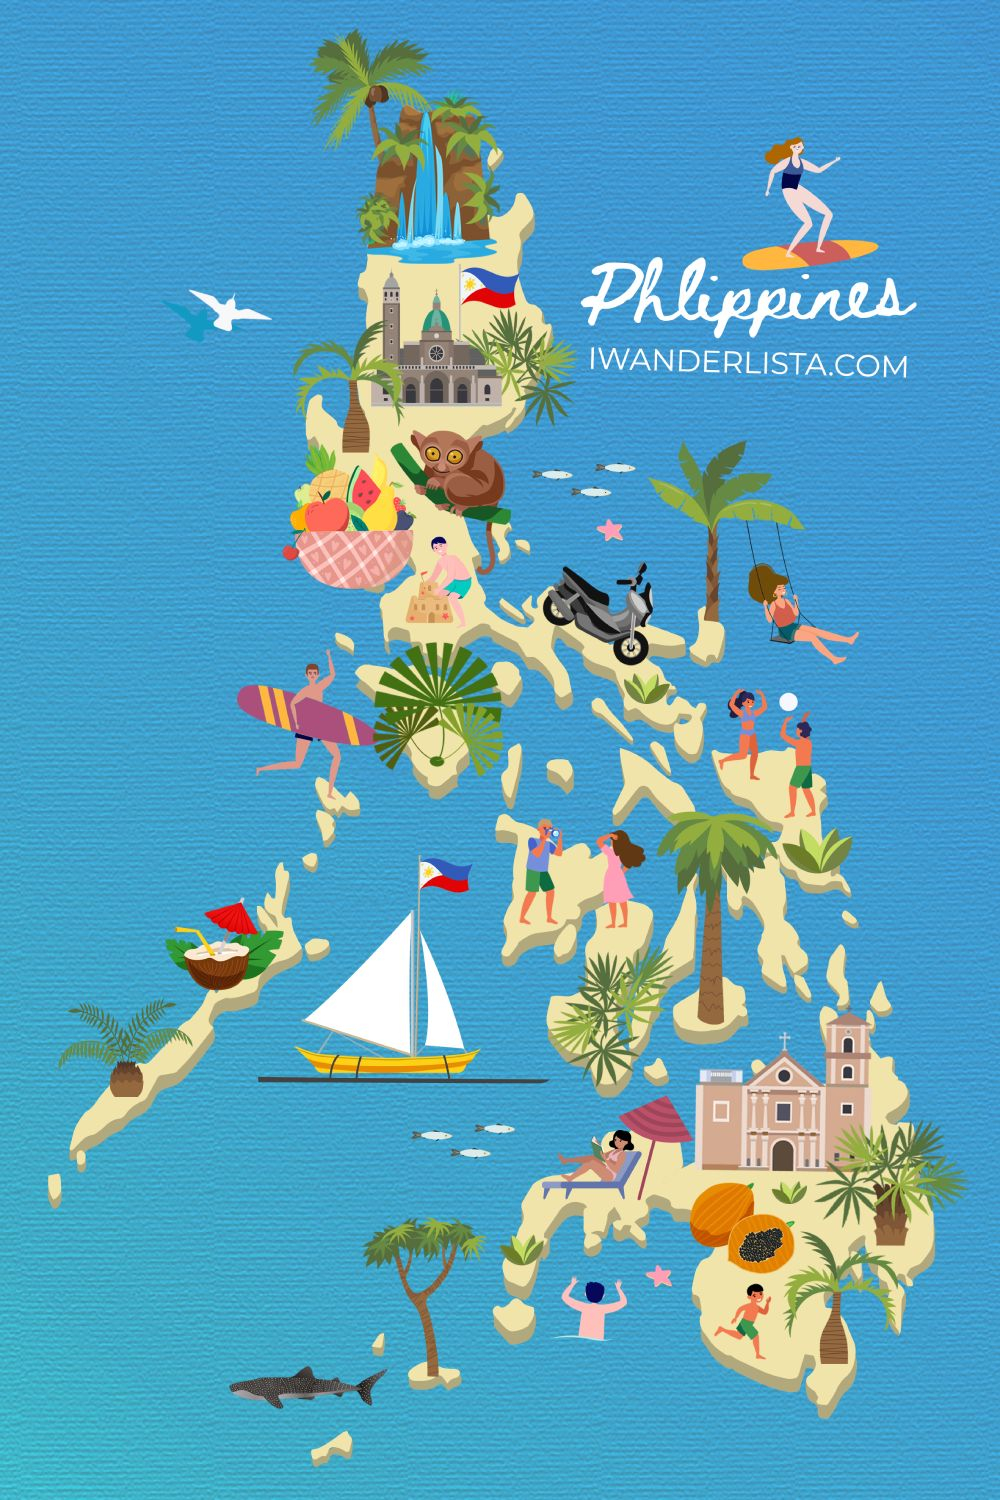 Philippines illustrated map